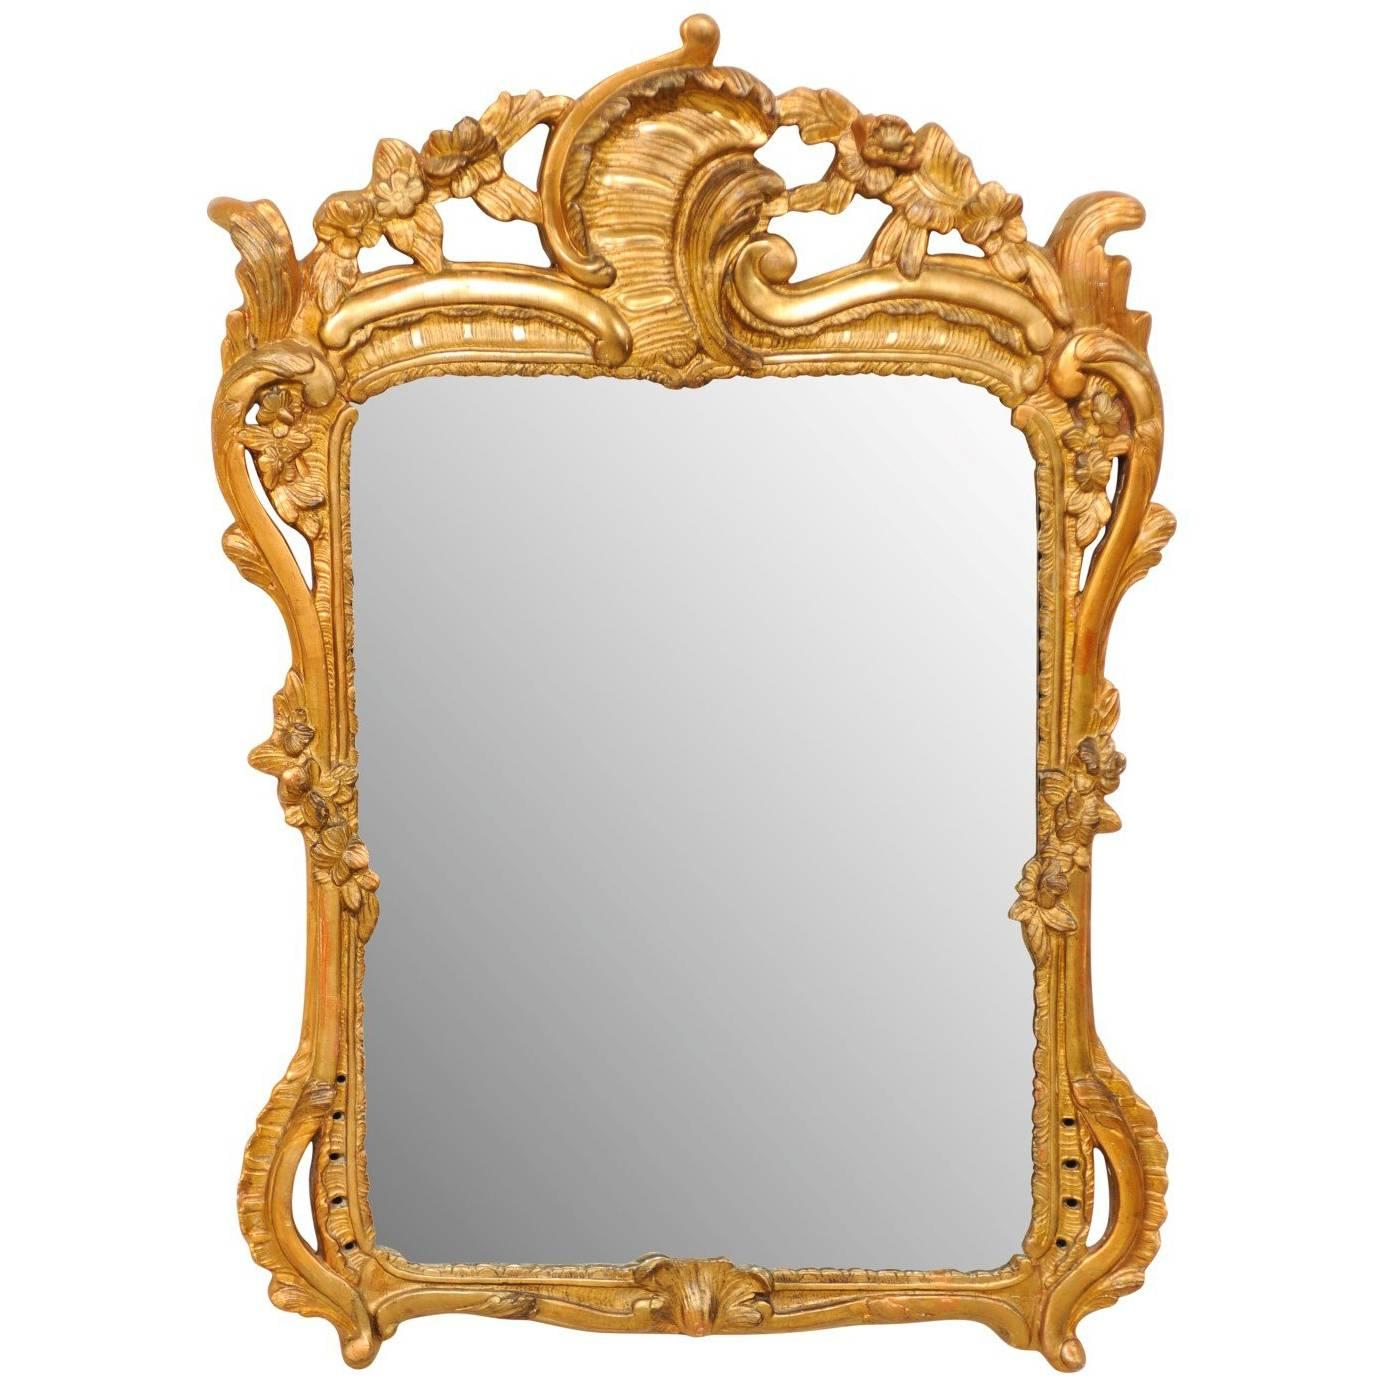 19th Century Italian Gold Painted Mirror with Gilding in Ornate Rococo Style